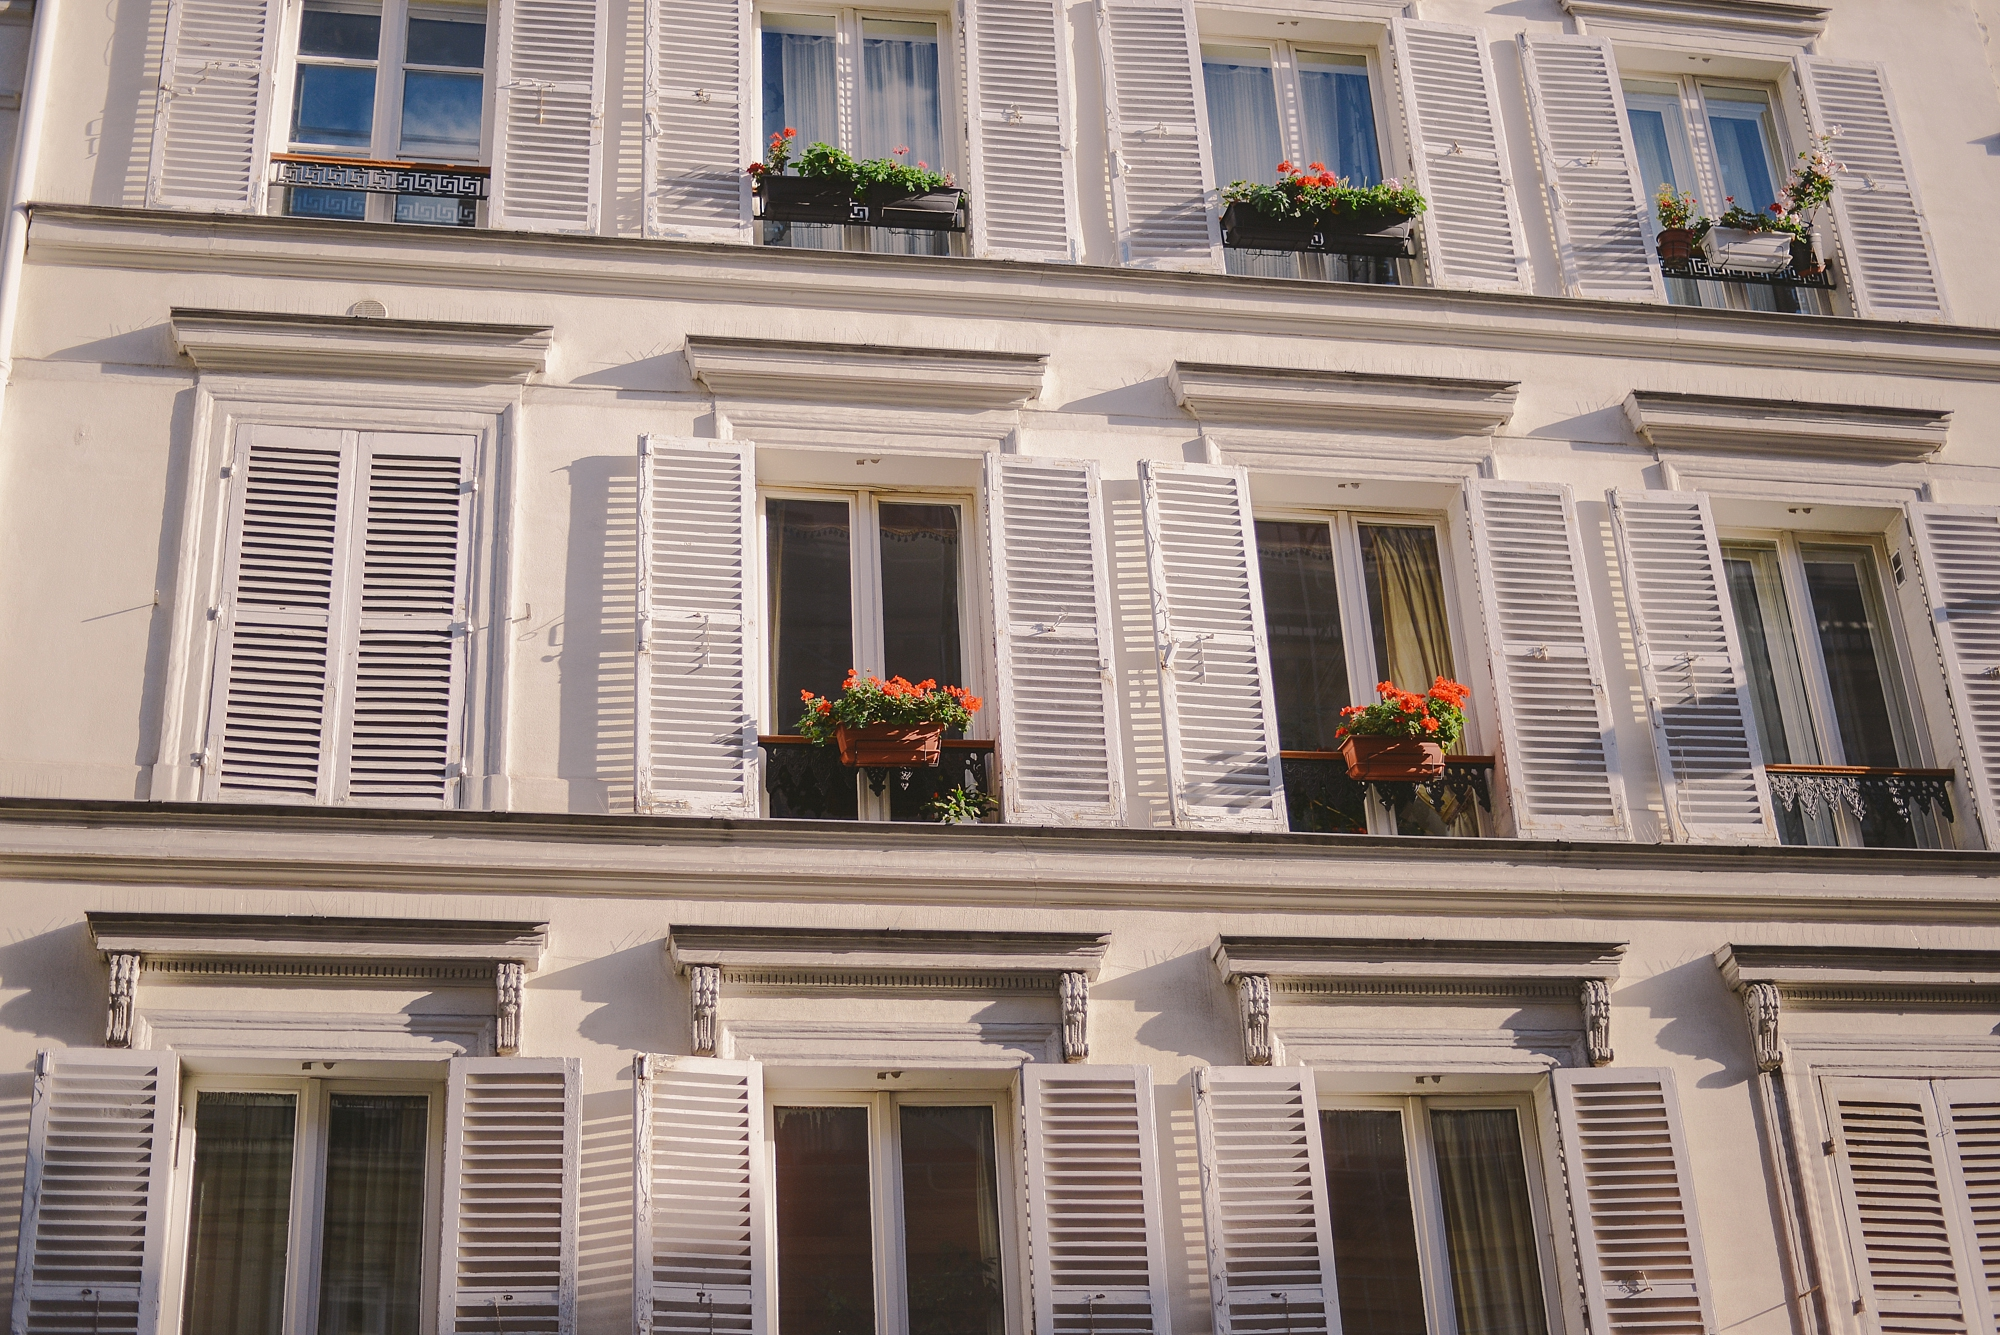 typical parisian windows with flower pots_0002.jpg